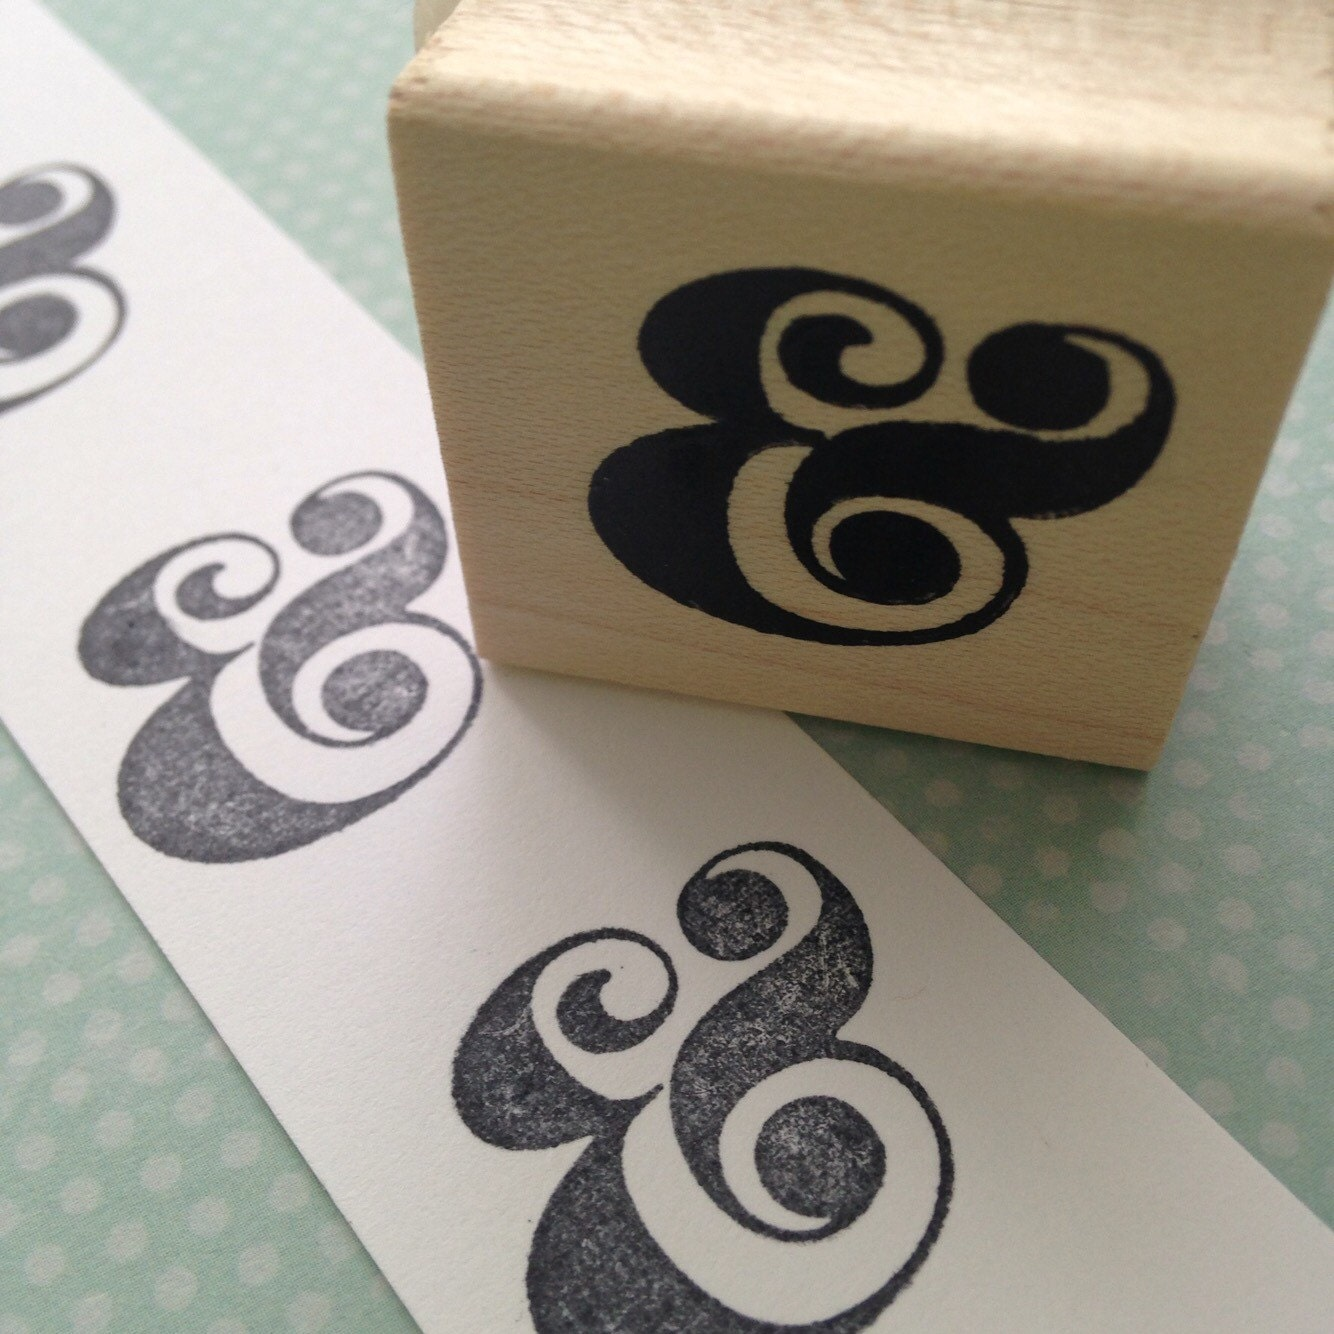 Ampersand rubber stamp 2669 from 100proofpress on etsy studio for Ampersand decoration etsy